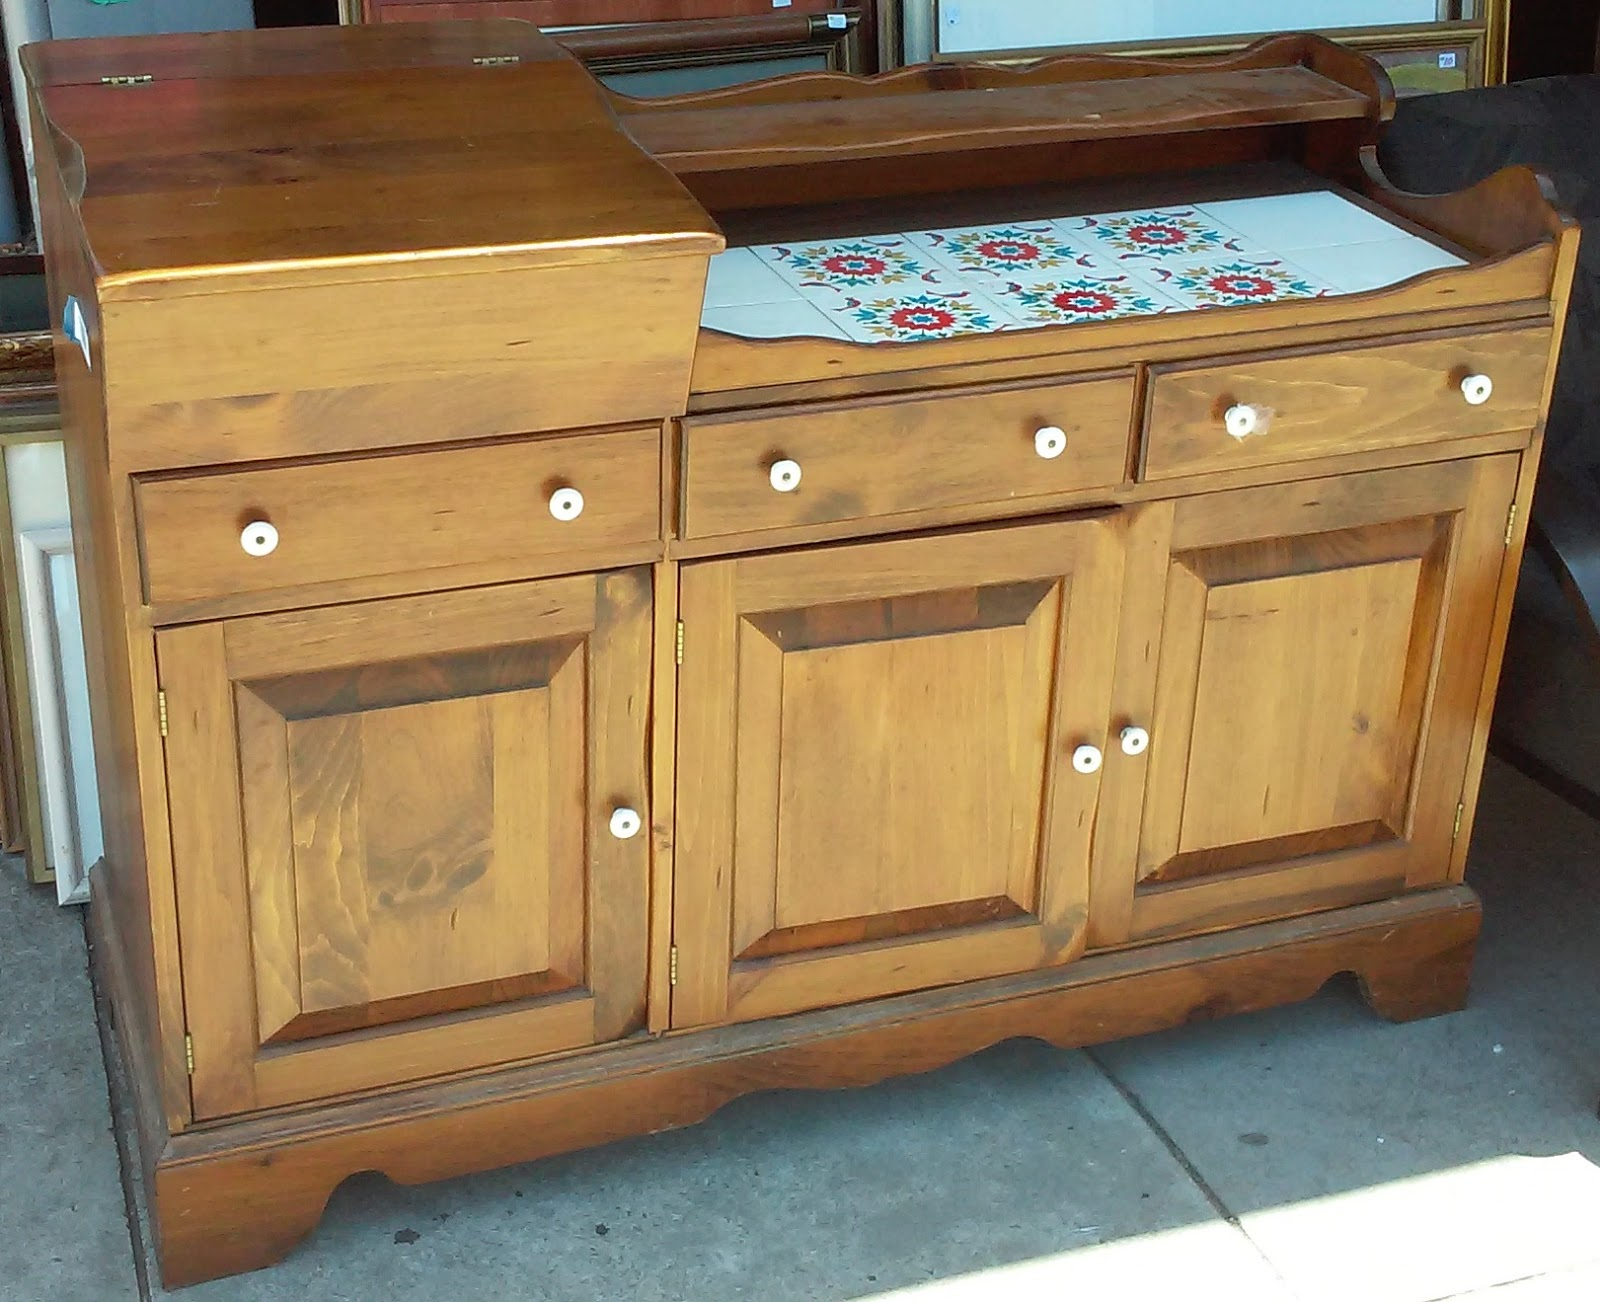 #A1782A UHURU FURNITURE & COLLECTIBLES: #3774 Country Pine 50 Wide Kitchen  with 1600x1302 px of Highly Rated Dresser 50 Inches Wide 13021600 picture/photo @ avoidforclosure.info